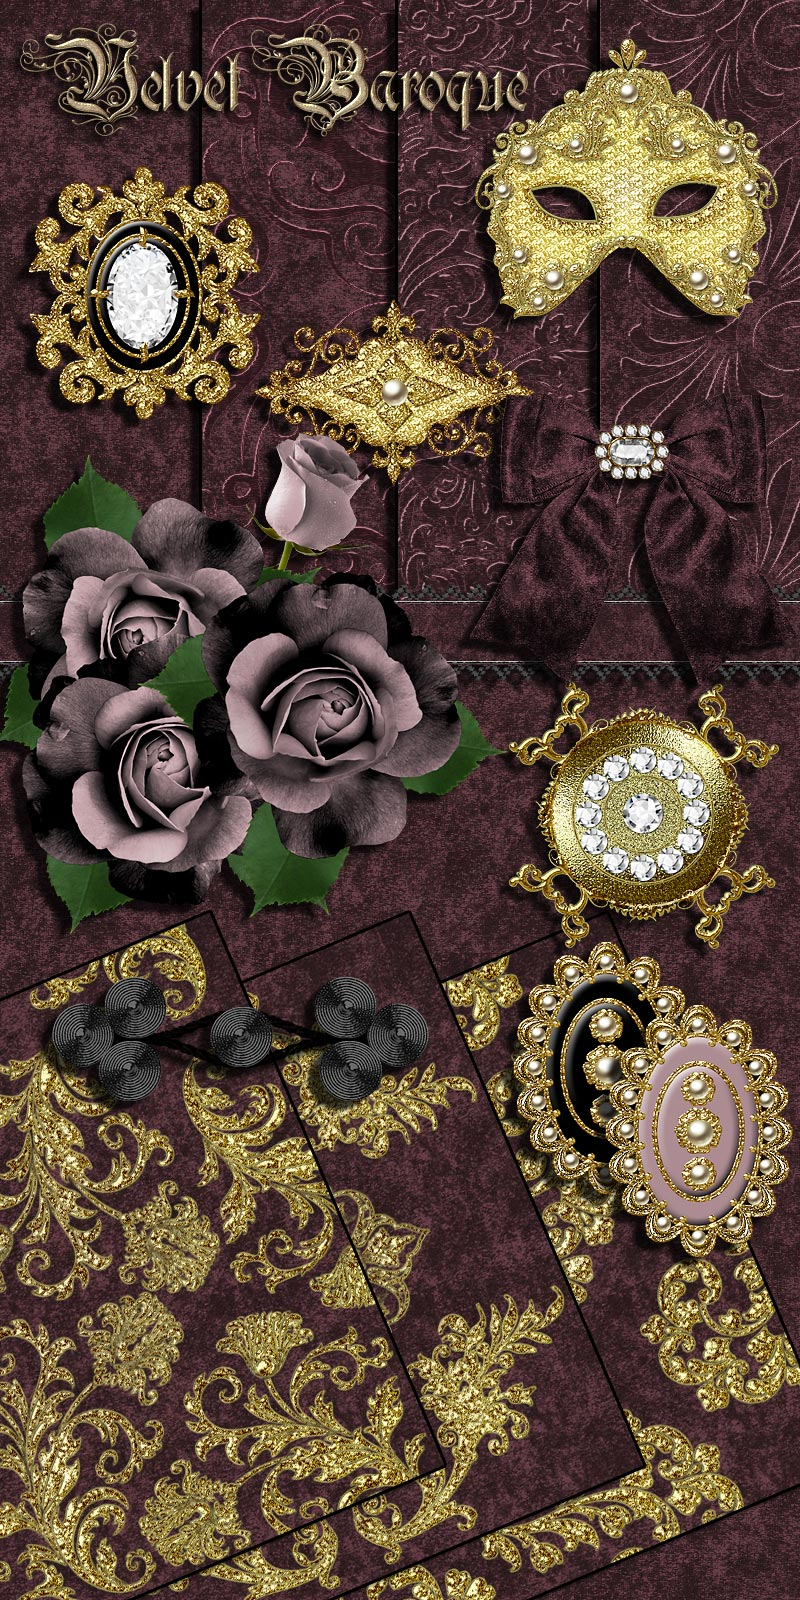 Sew and Sew Velvet Baroque